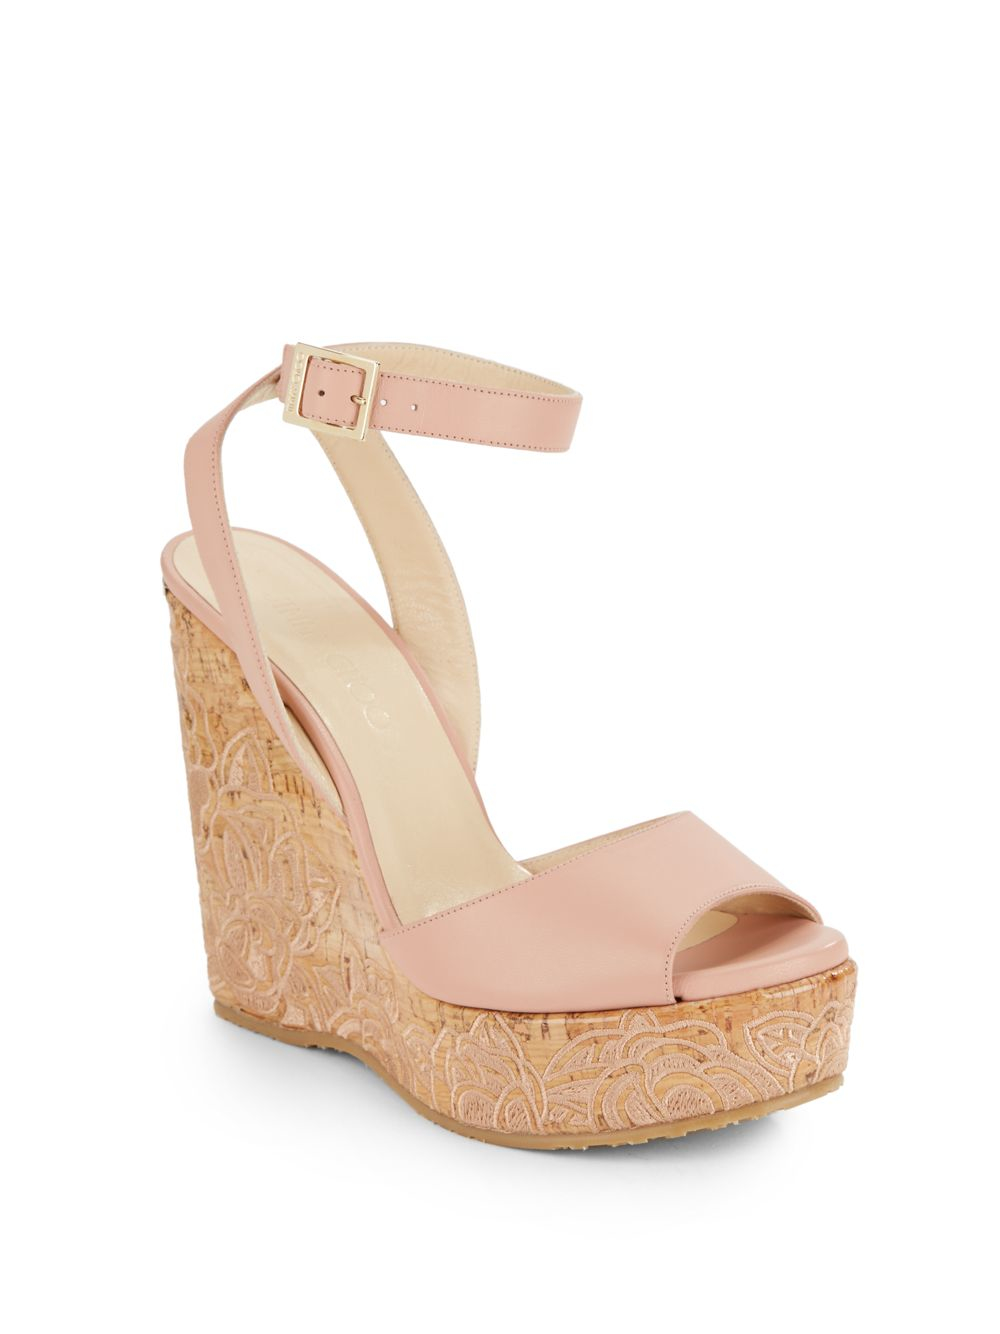 1a788a3ecf33 Lyst - Jimmy Choo Patara Leather   Embroidered Cork Wedge Sandals in ...